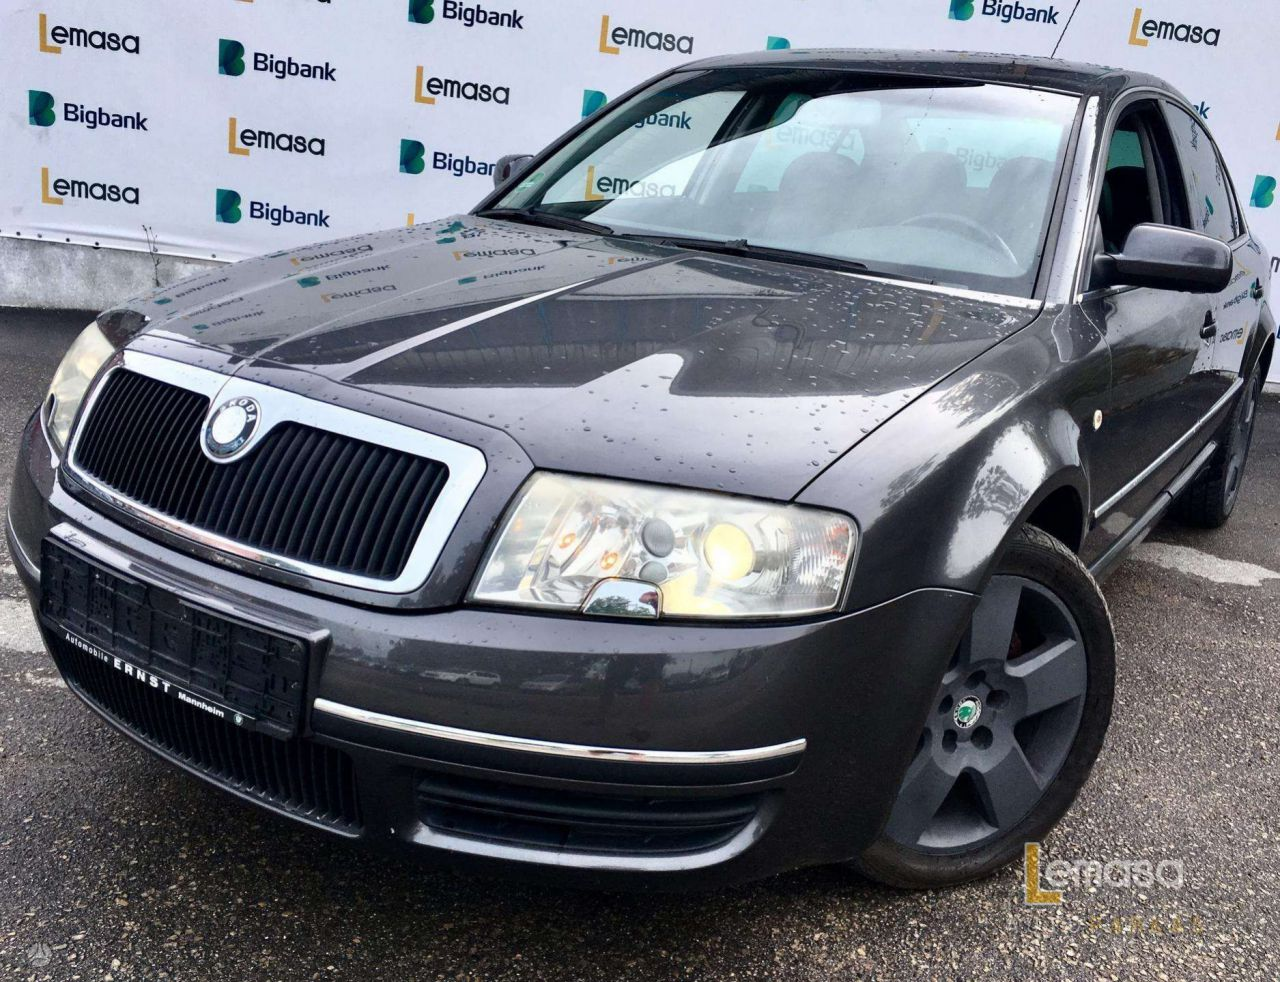 Skoda Superb, Sedanas, 2003